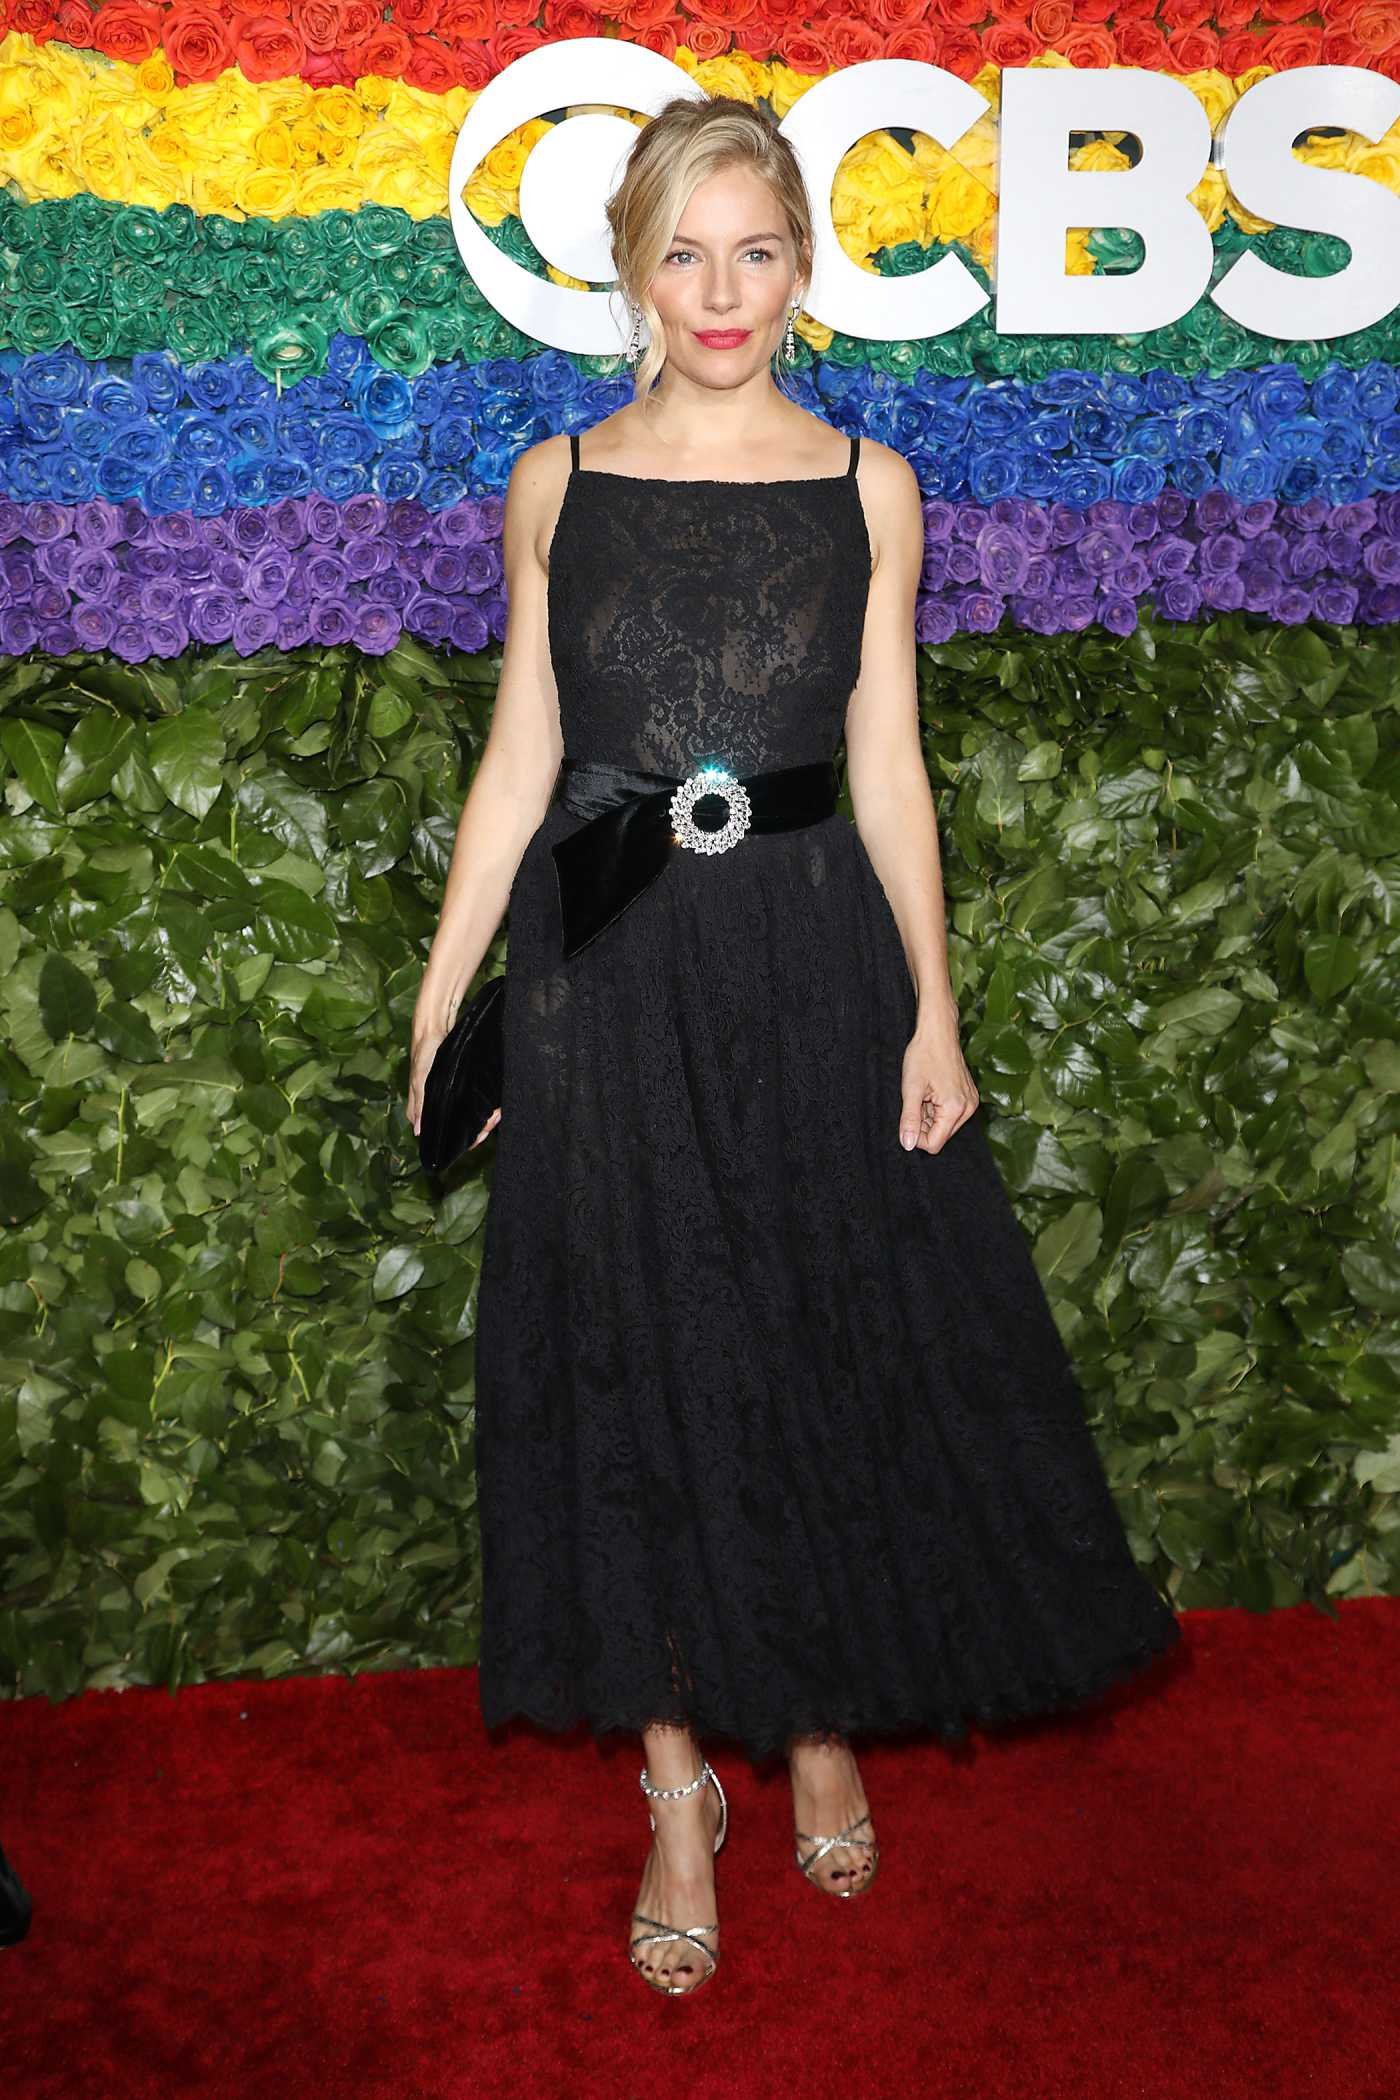 Sienna Miller Attends the 73rd Annual Tony Awards at Radio City Music Hall in New York 06/09/2019